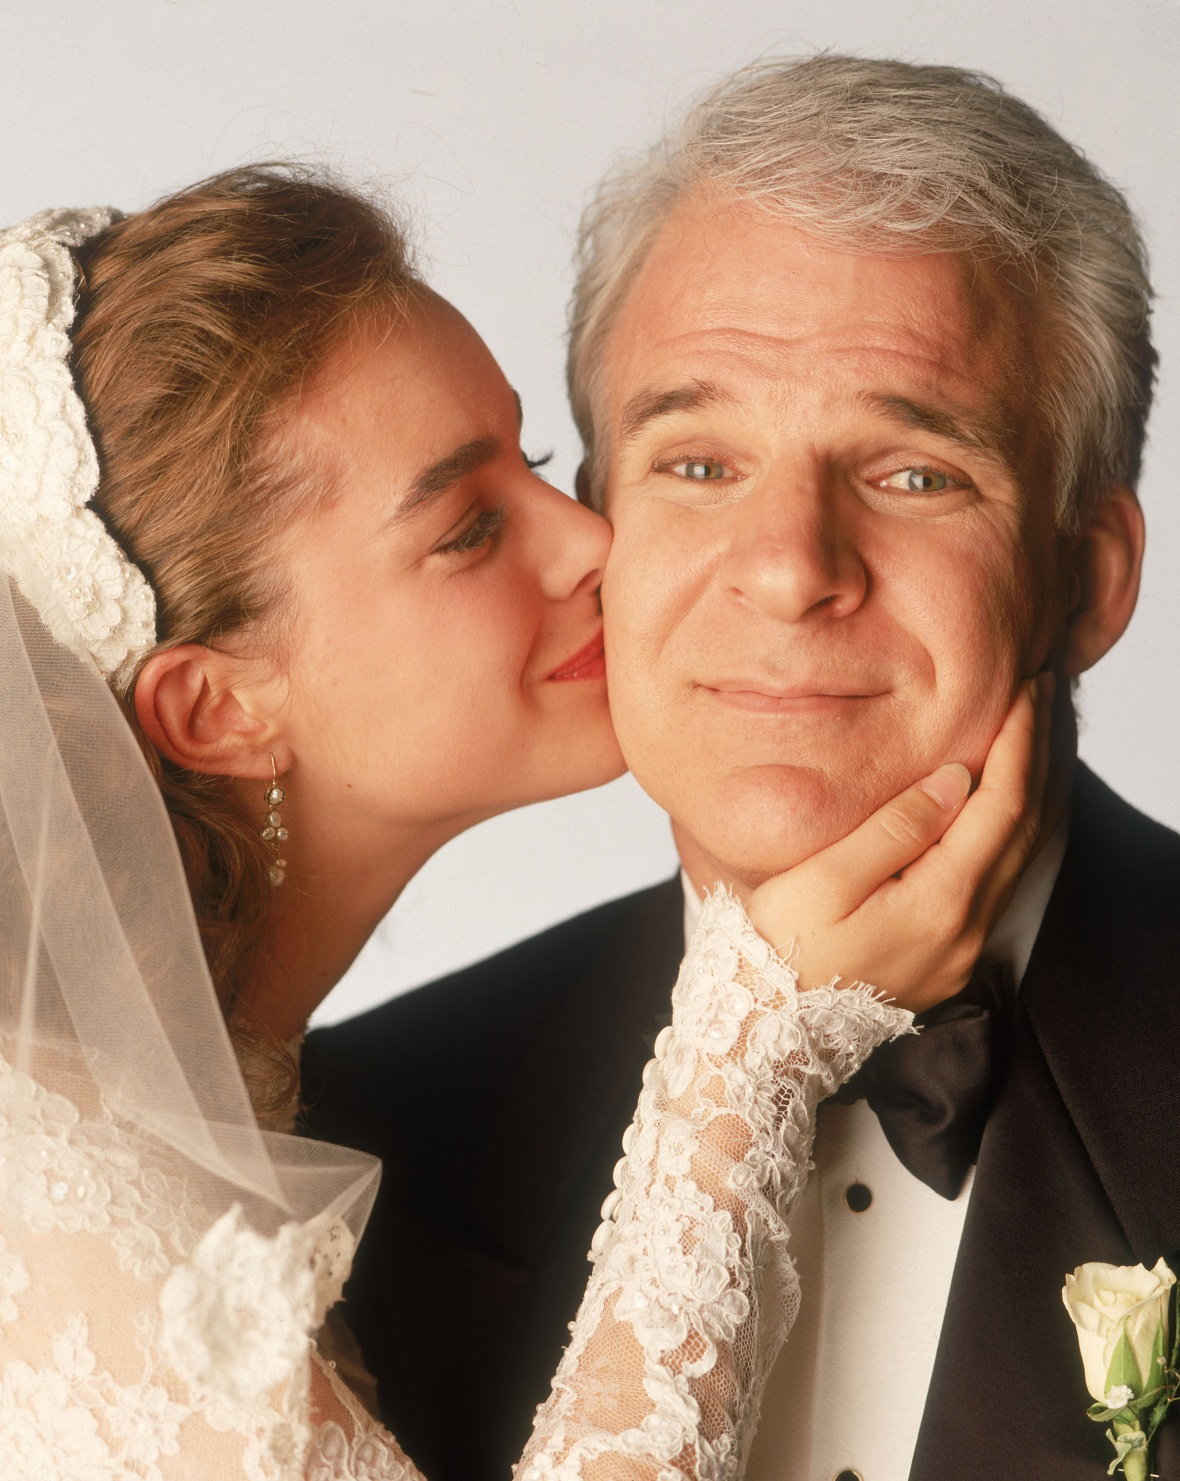 kimberly williams-paisley steve martin father of the bride r/r